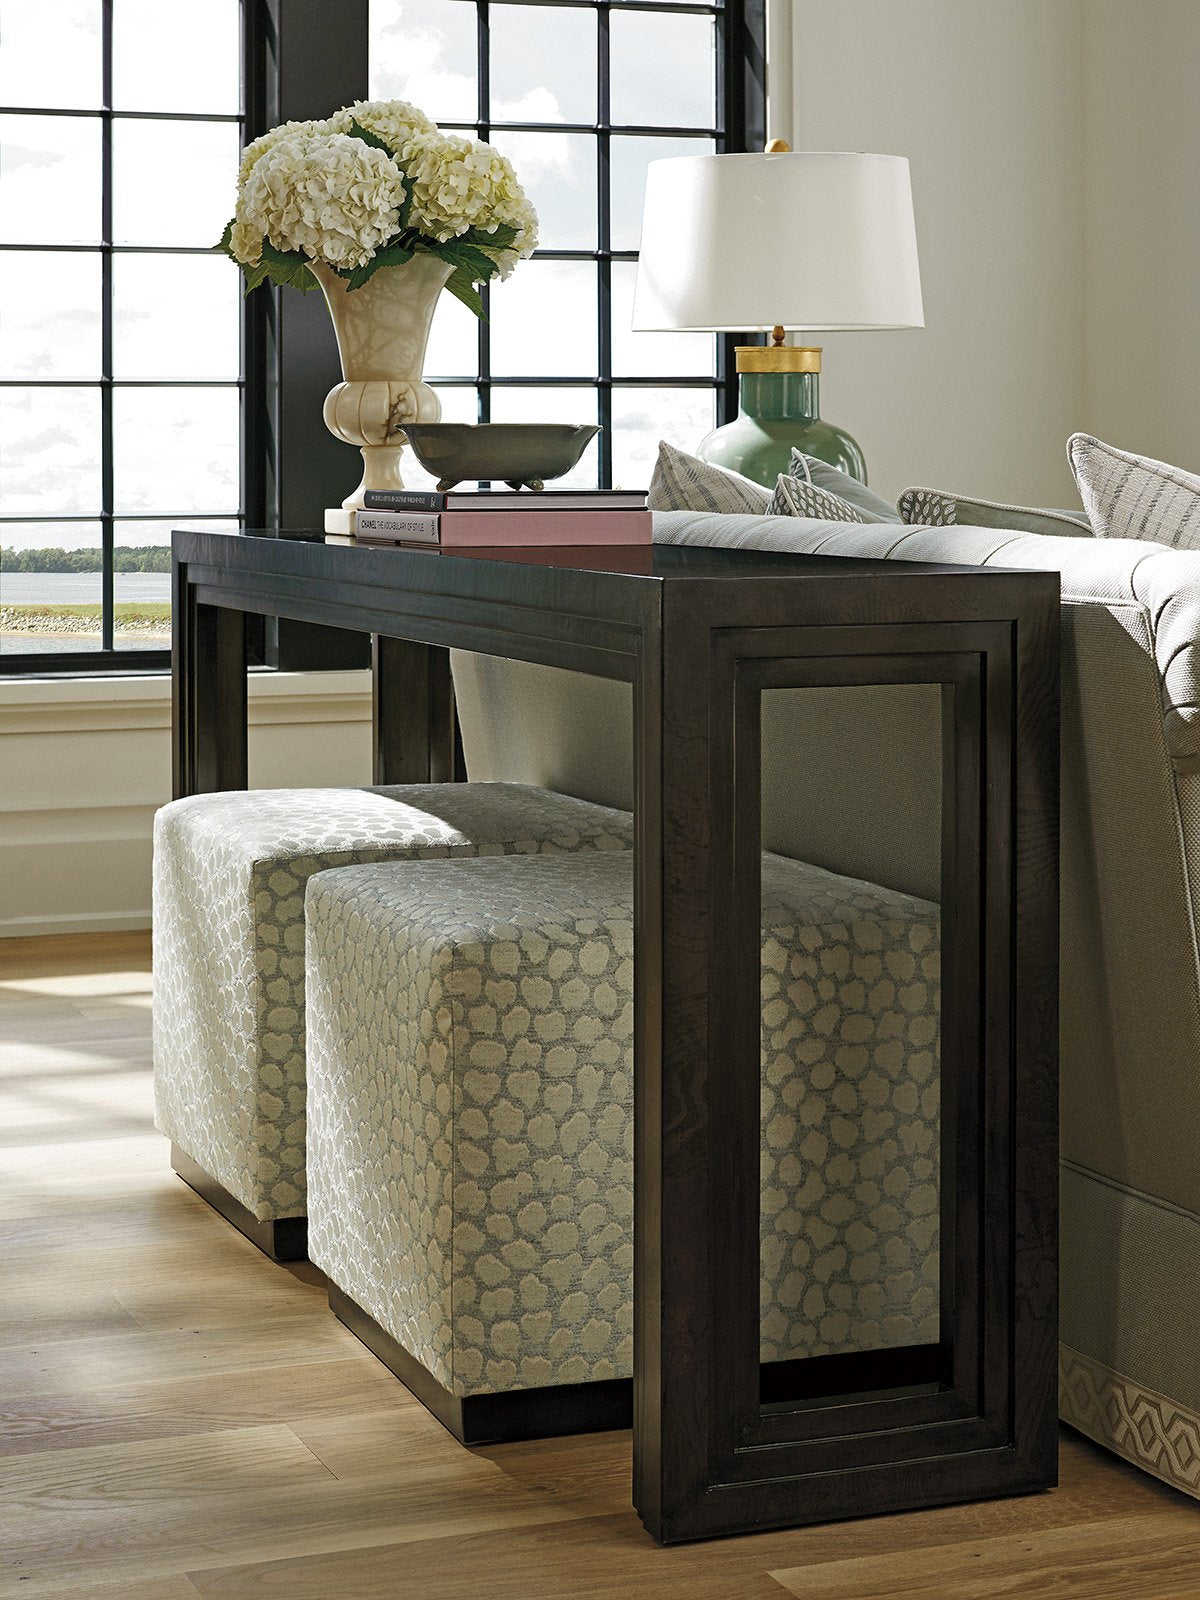 Essex Console by shopbarclaybutera